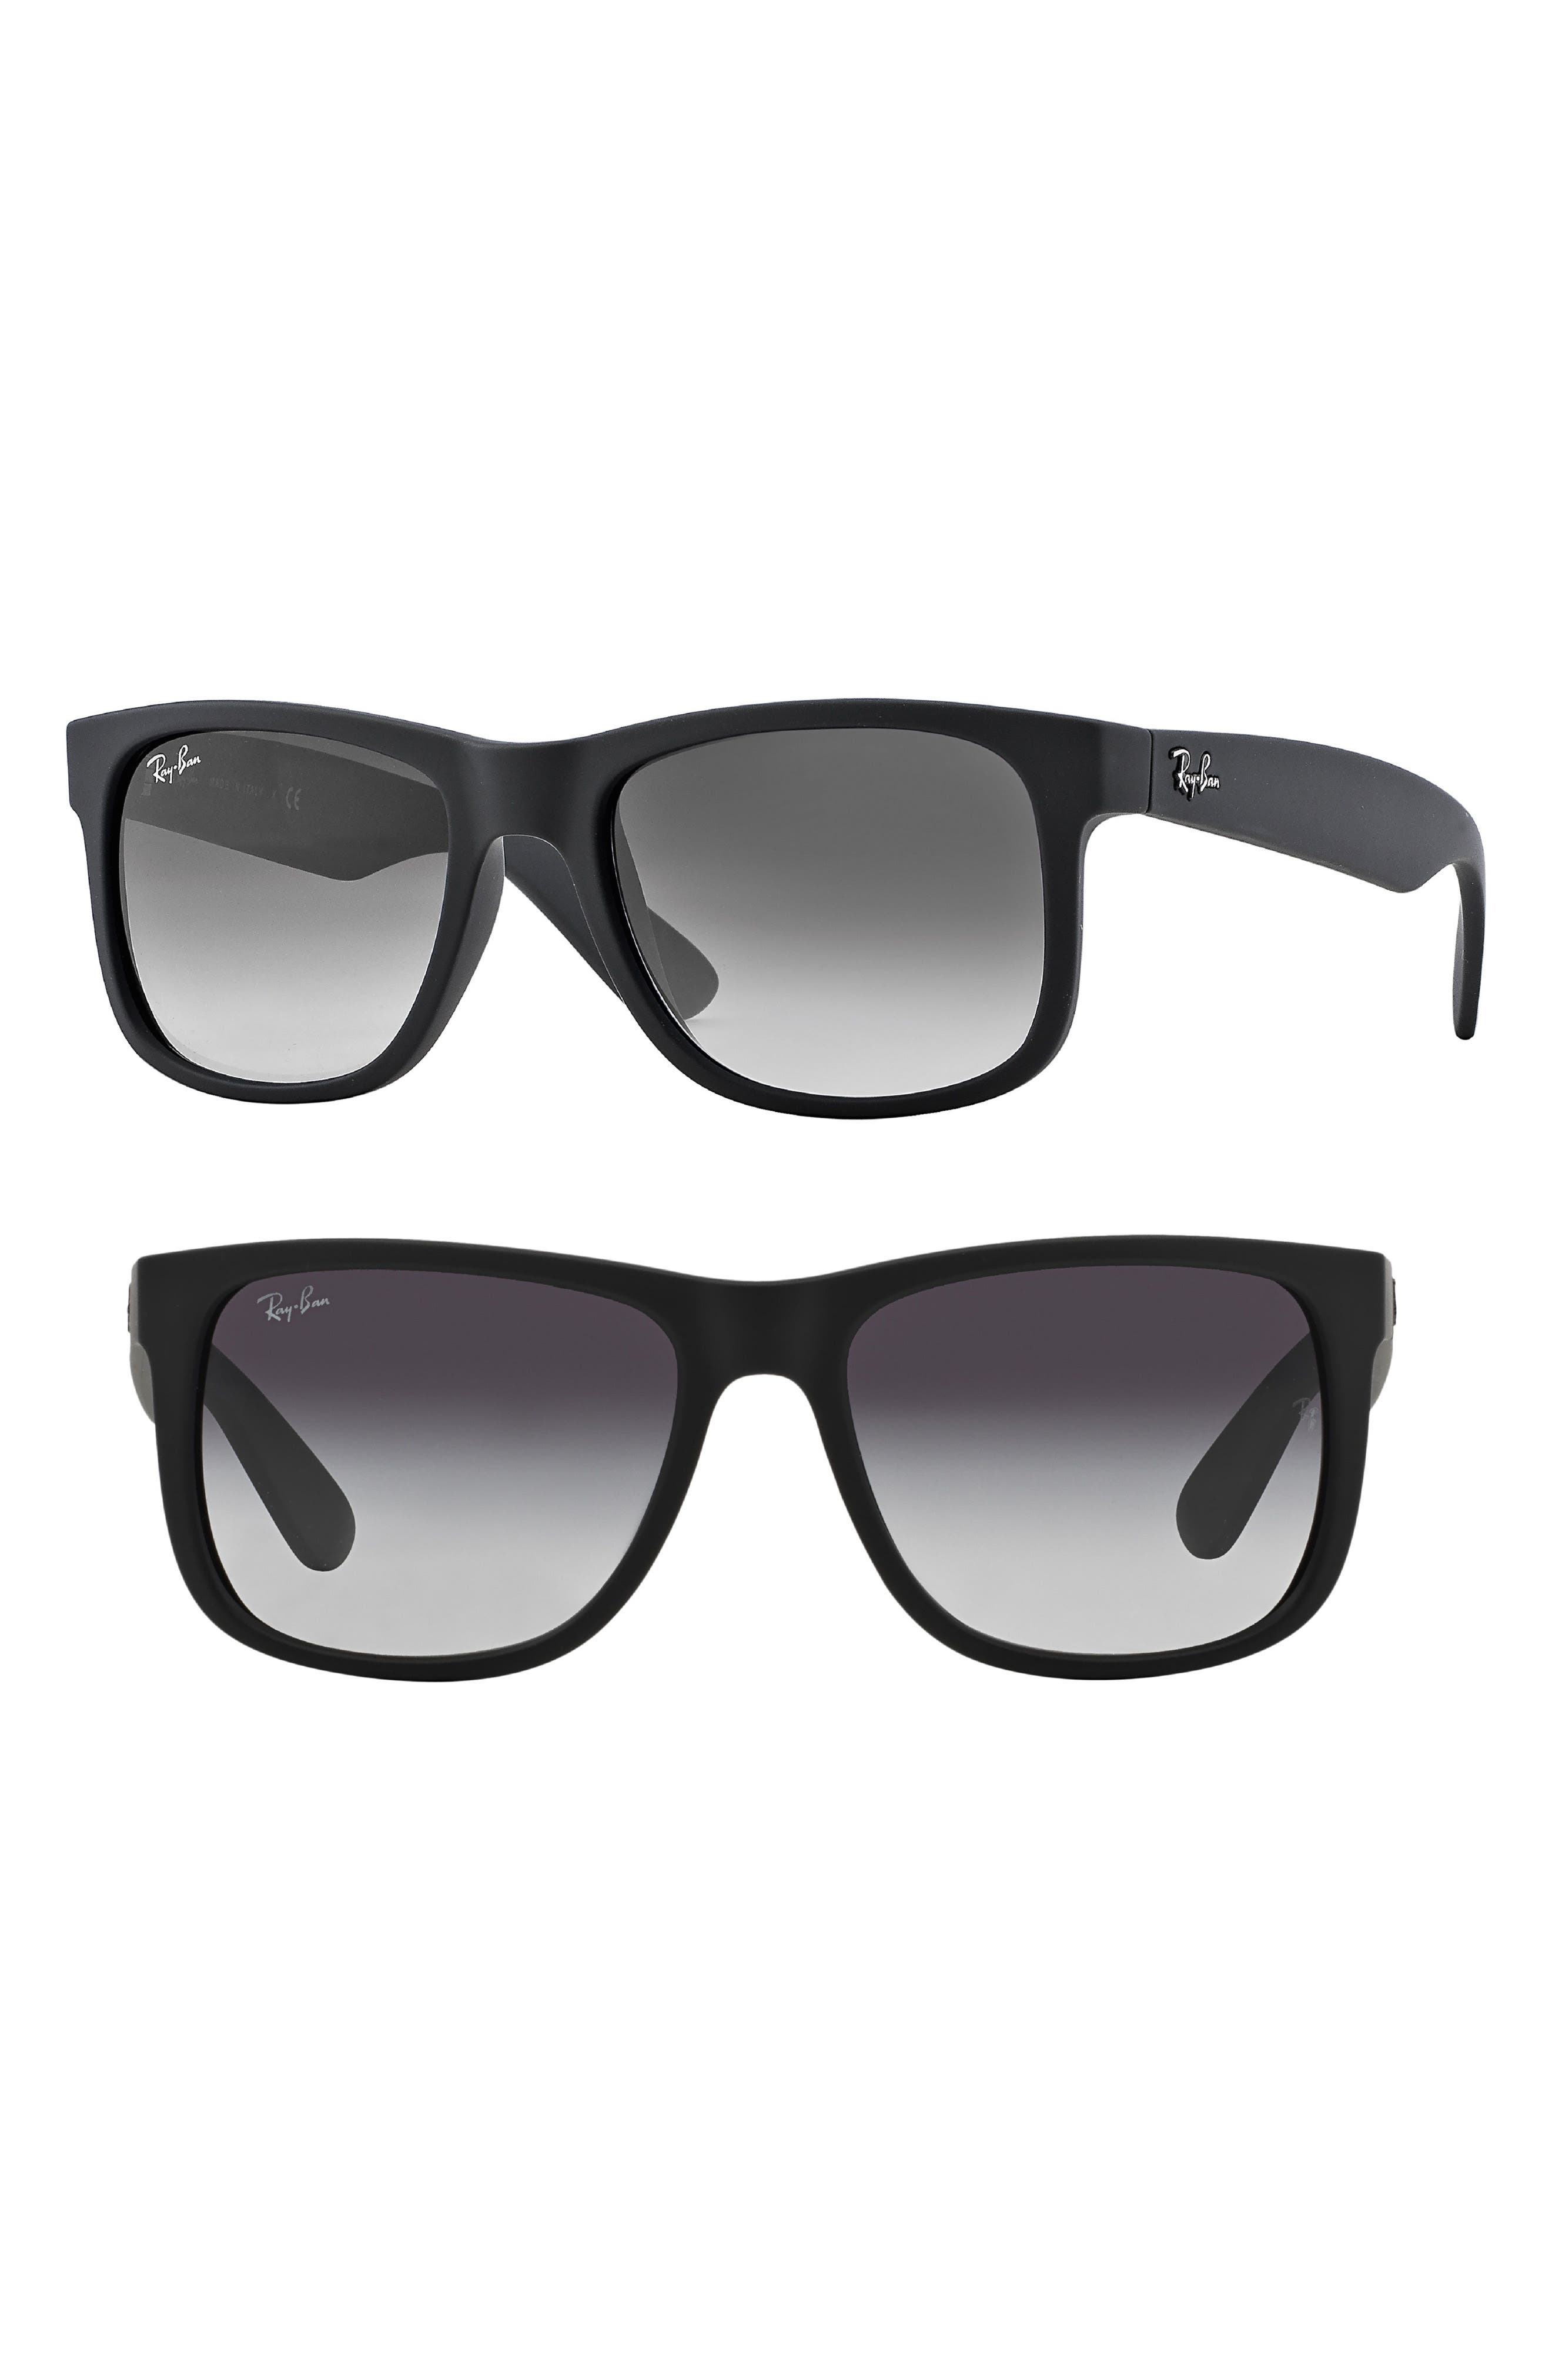 Youngster 54mm Sunglasses,                         Main,                         color, BLACK